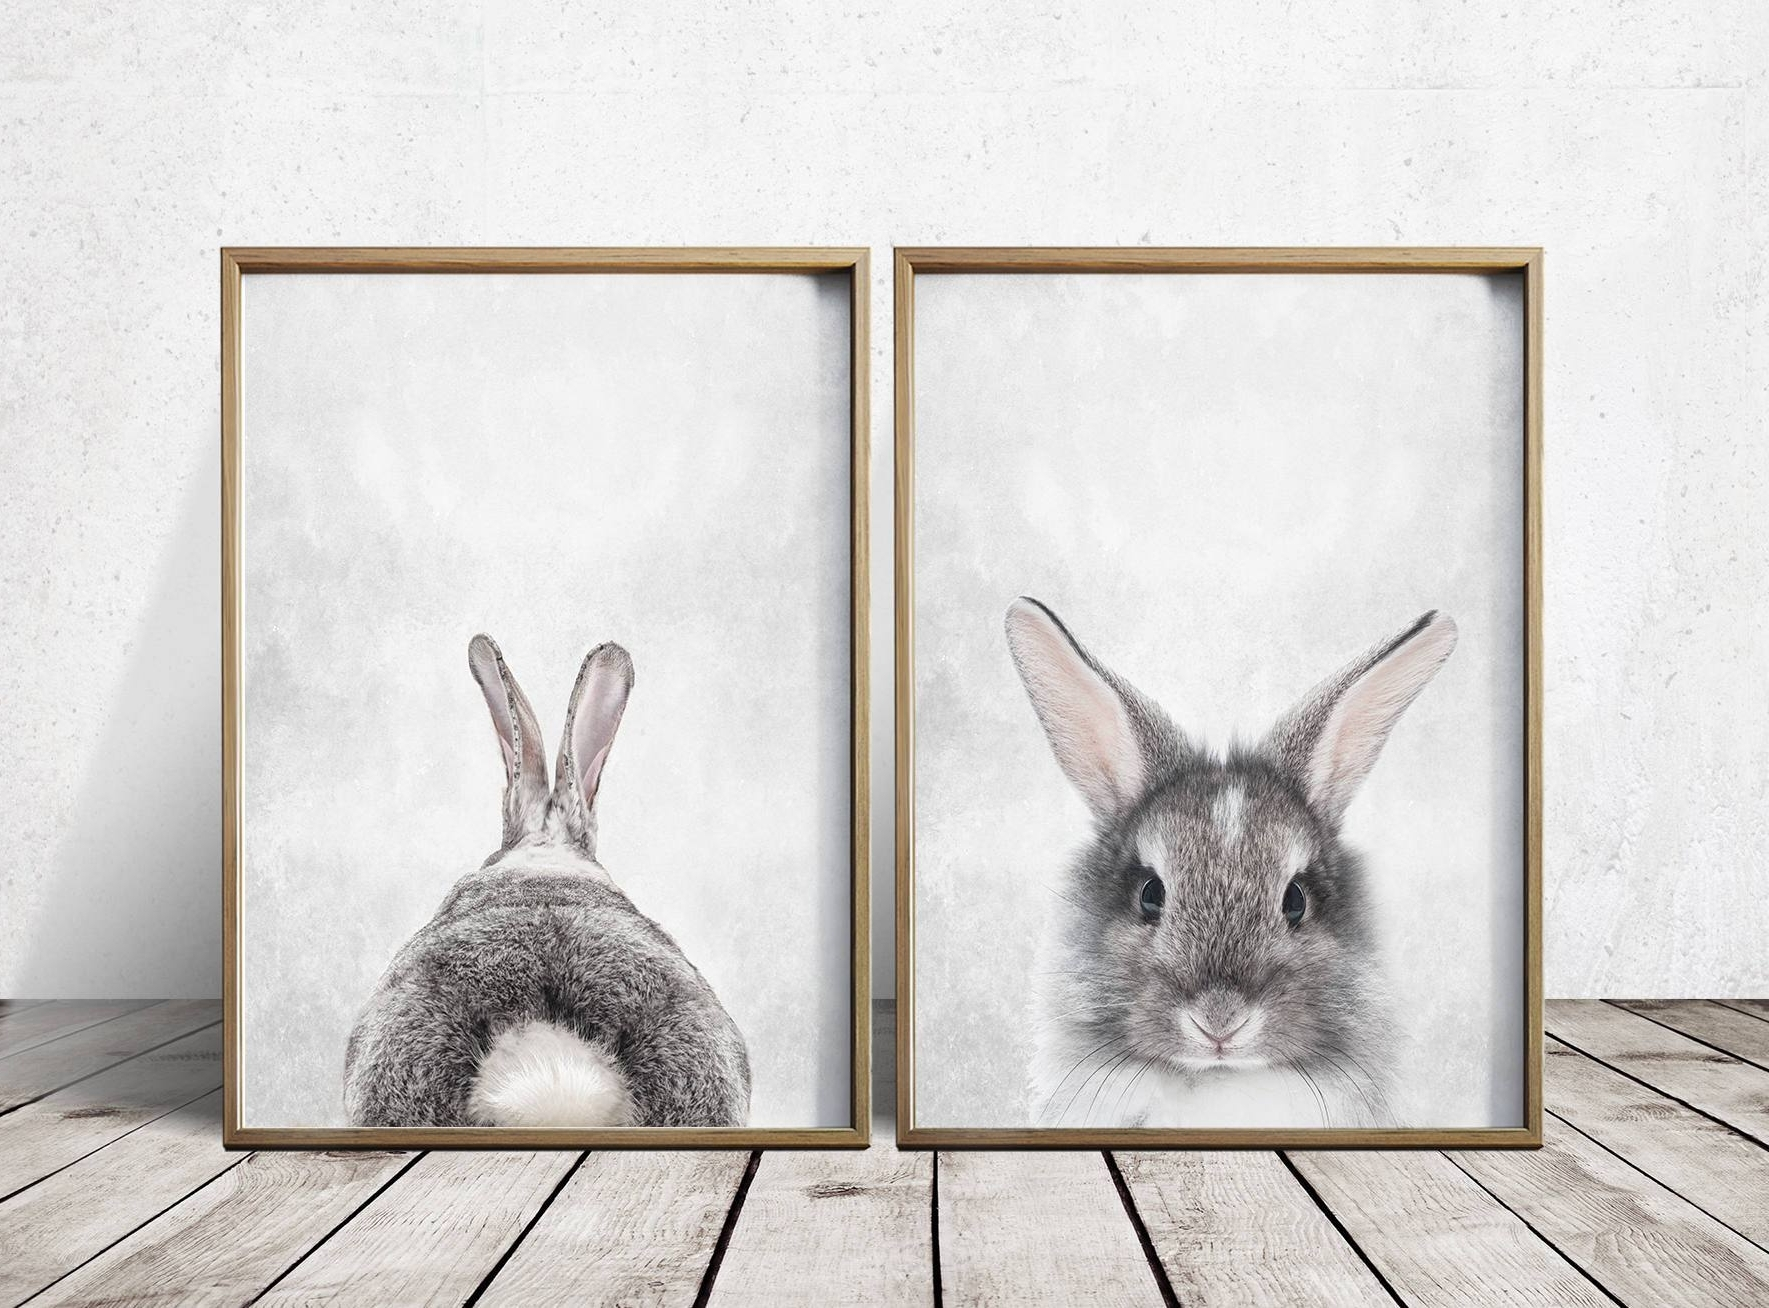 Nursery Wall Art Nursery Decor Gray Rabbit Print Bunny, Vintage Inside Most Up To Date Bunny Wall Art (Gallery 4 of 20)